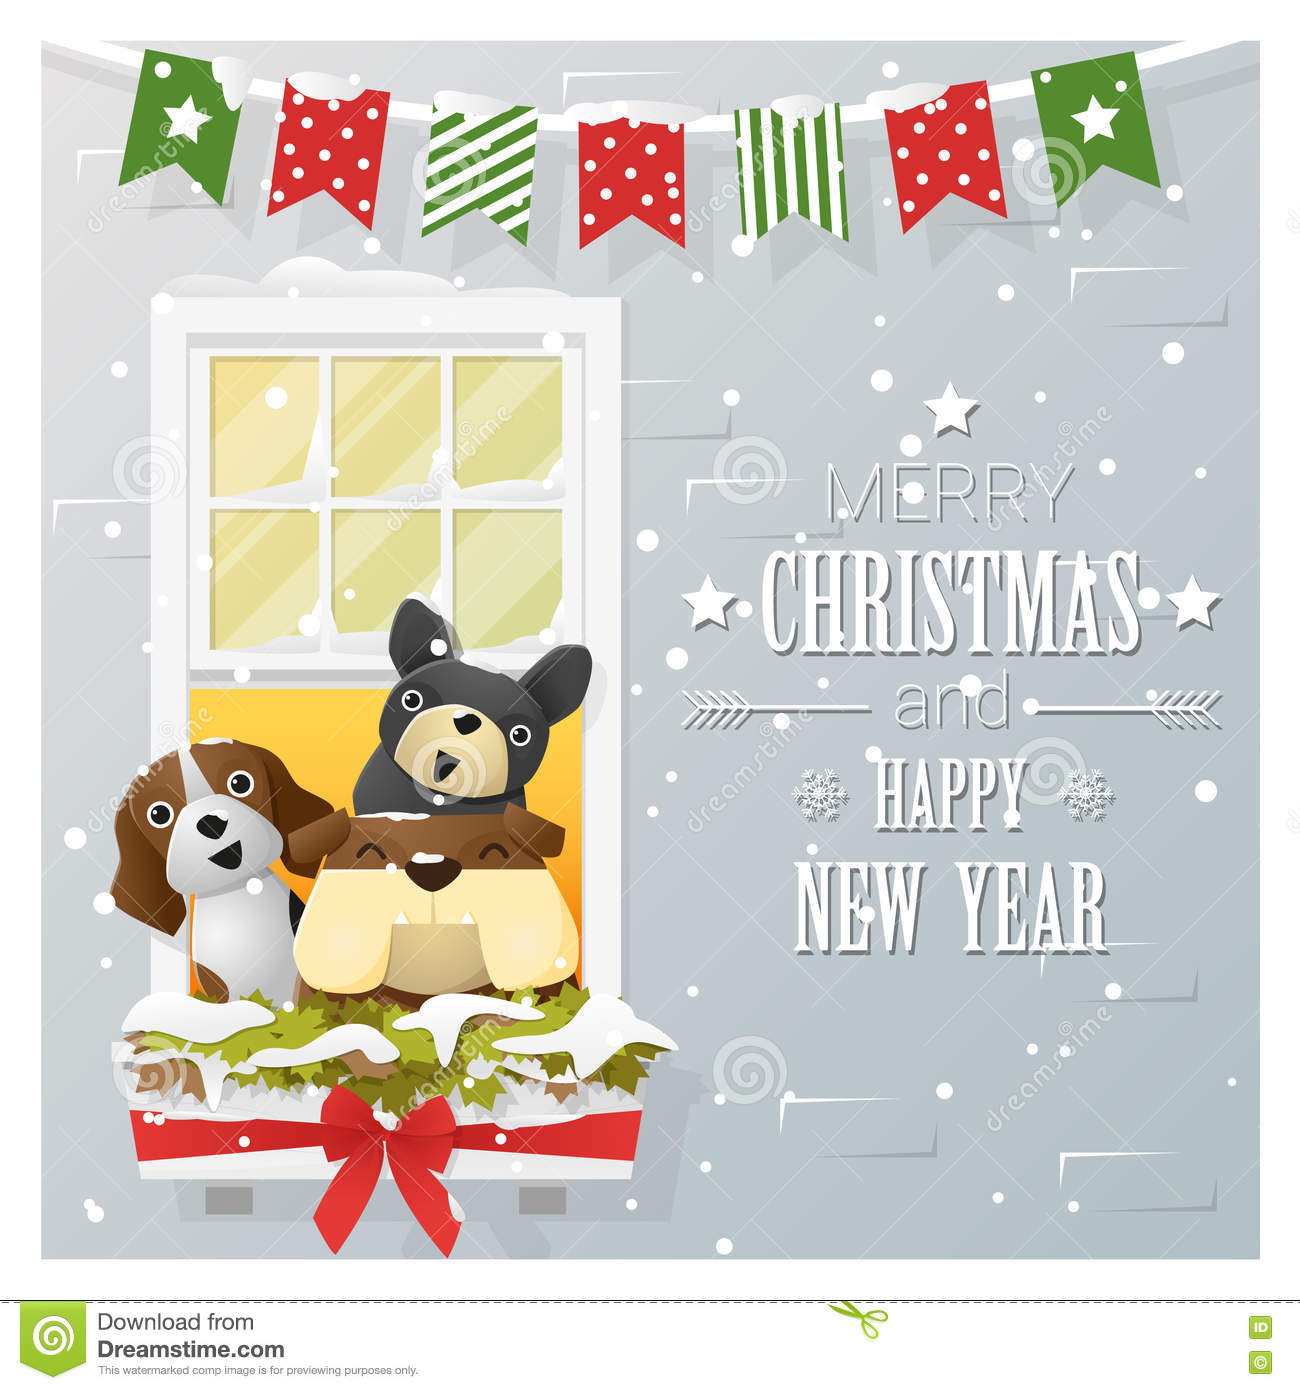 download merry christmas and happy new year greeting card with dog family stock vector illustration